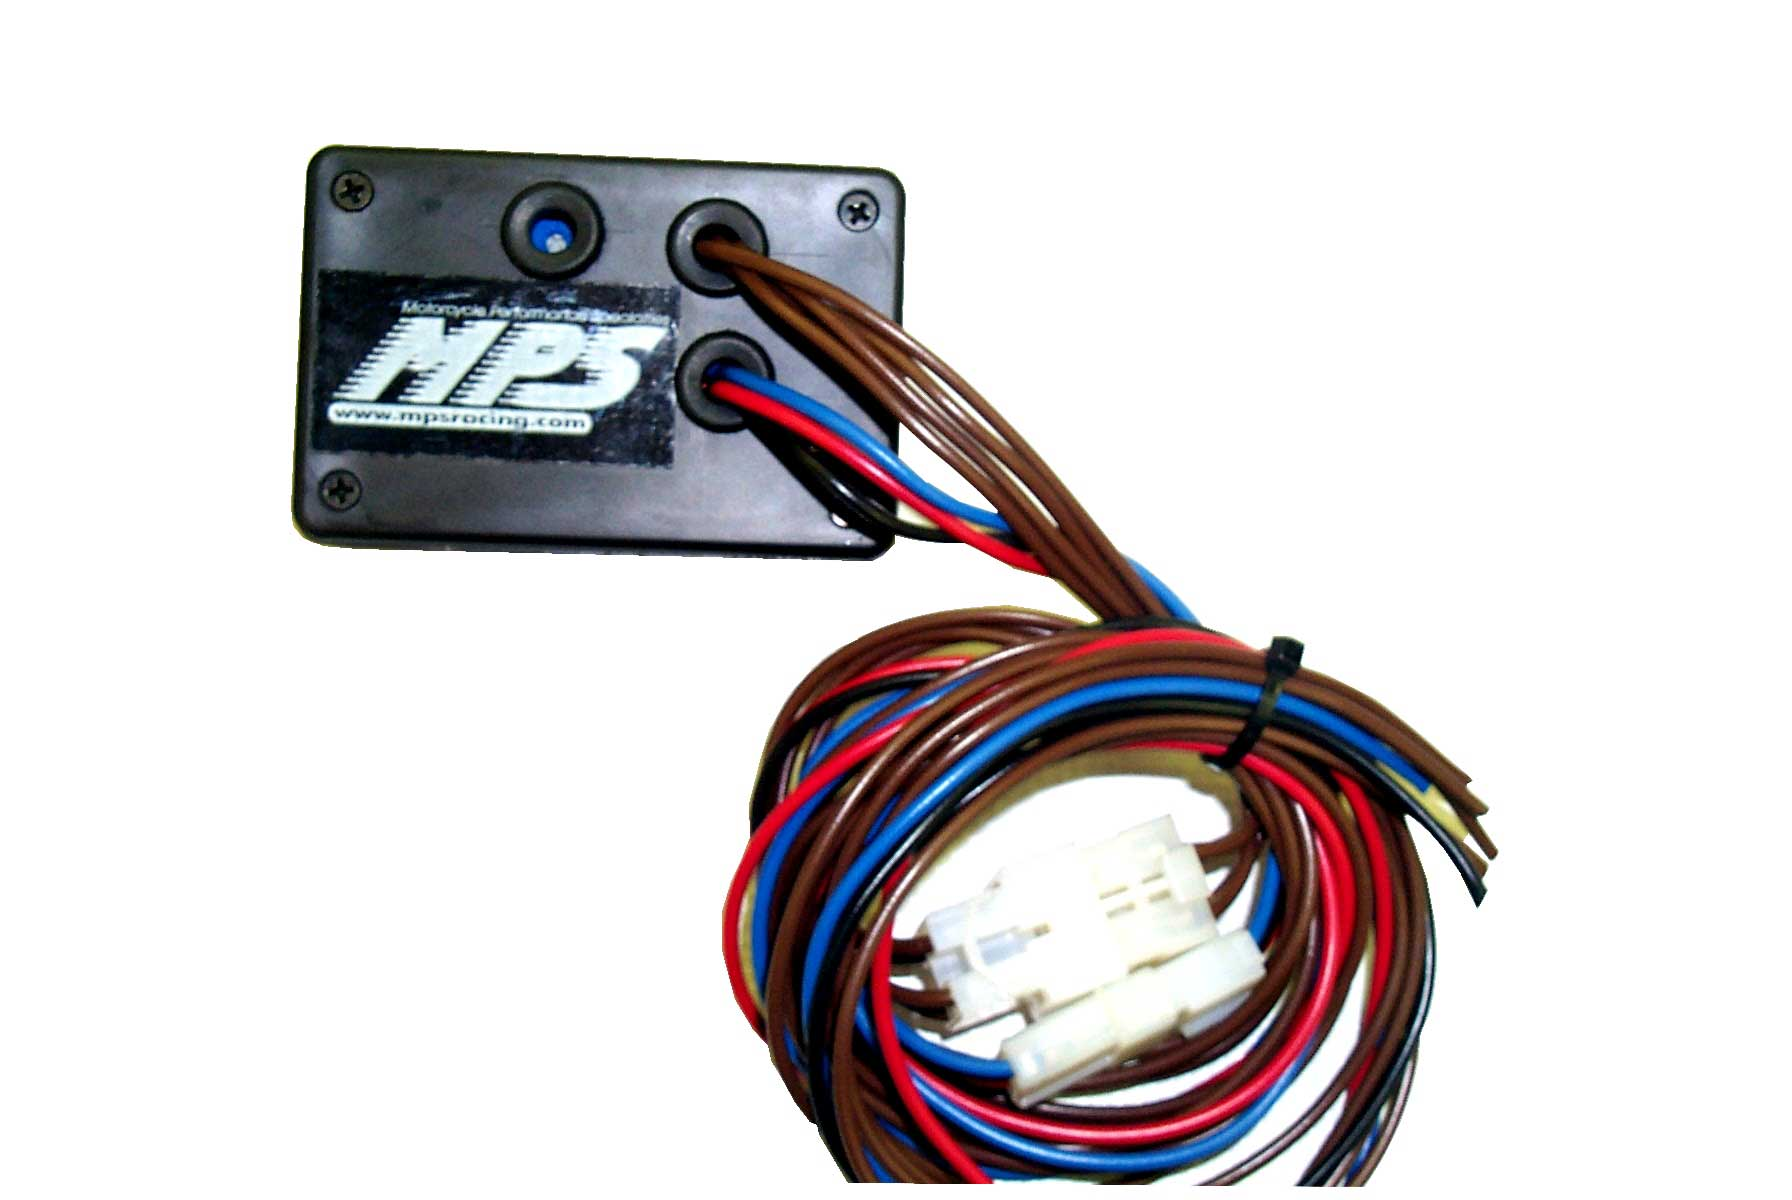 Mps Engine Kills Wiring Harness Bad Symptoms 1 0263 Sport Bike Kill